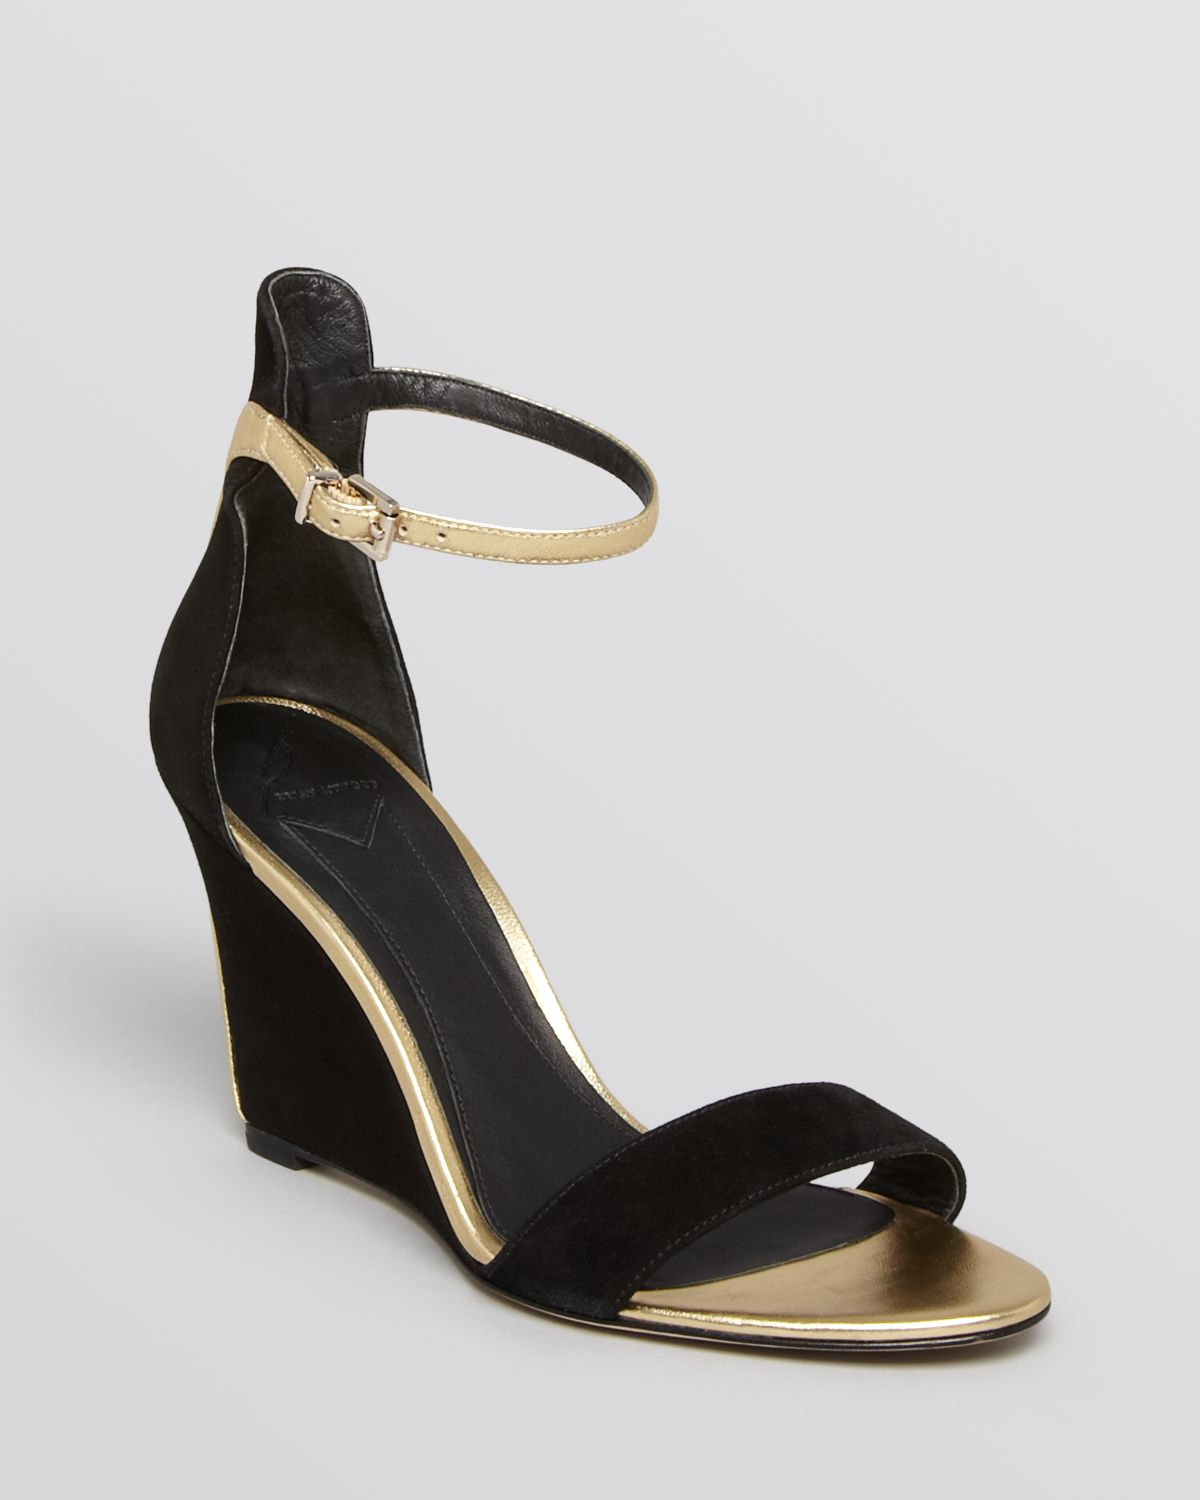 b brian atwood wedge sandals roberta in gold black gold